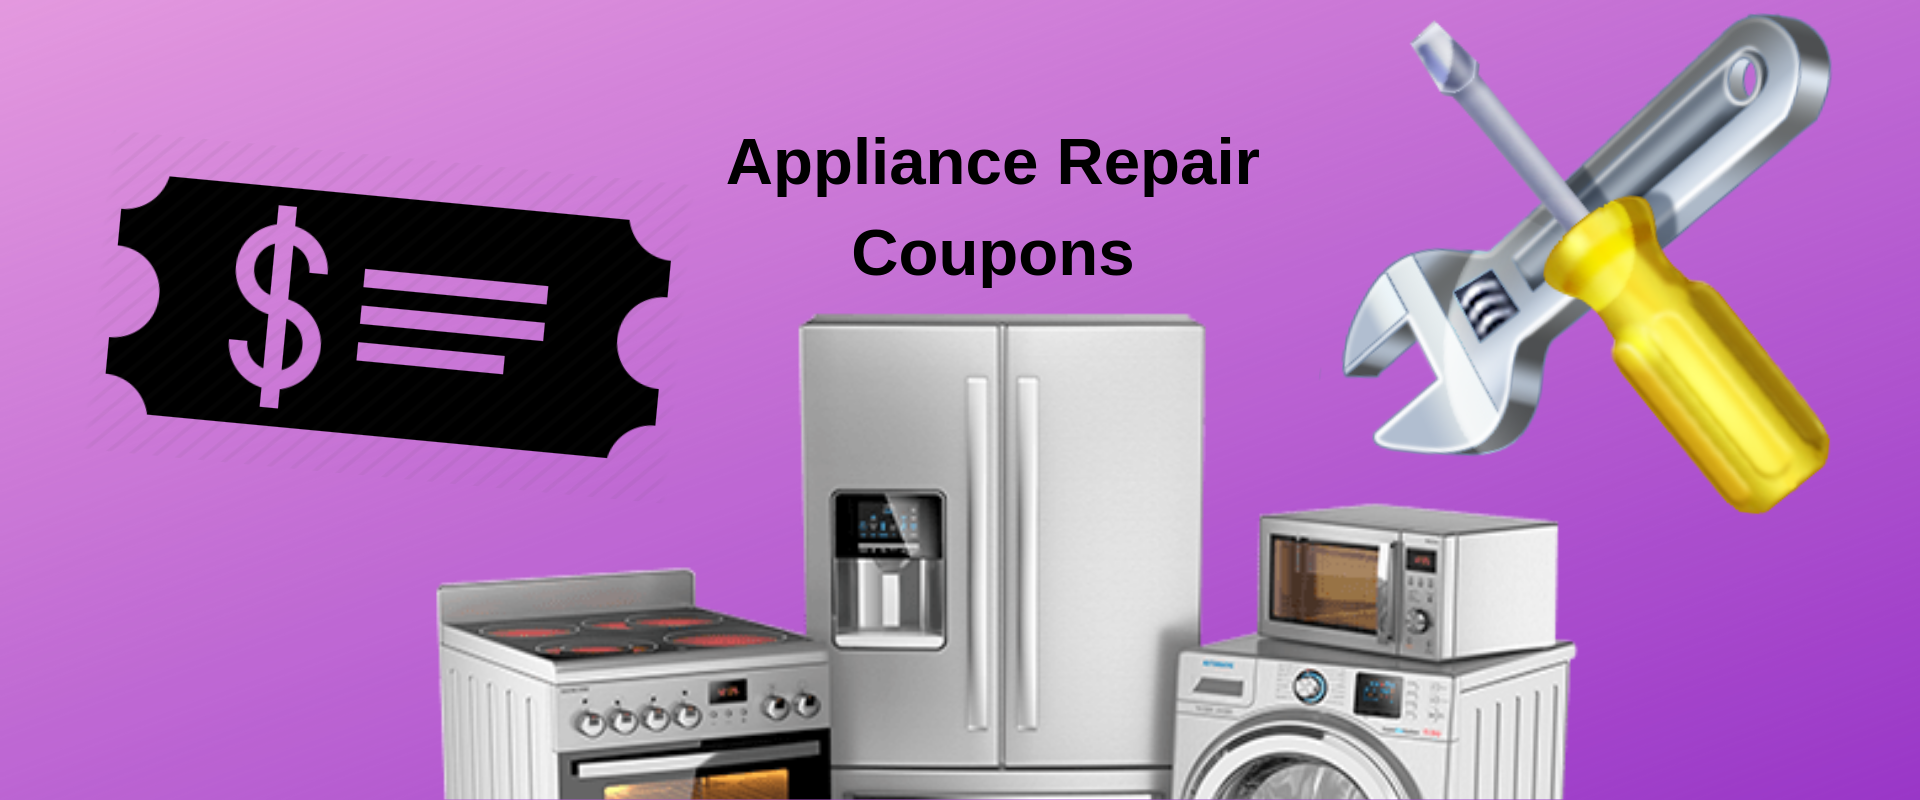 Appliance-repair-Coupons